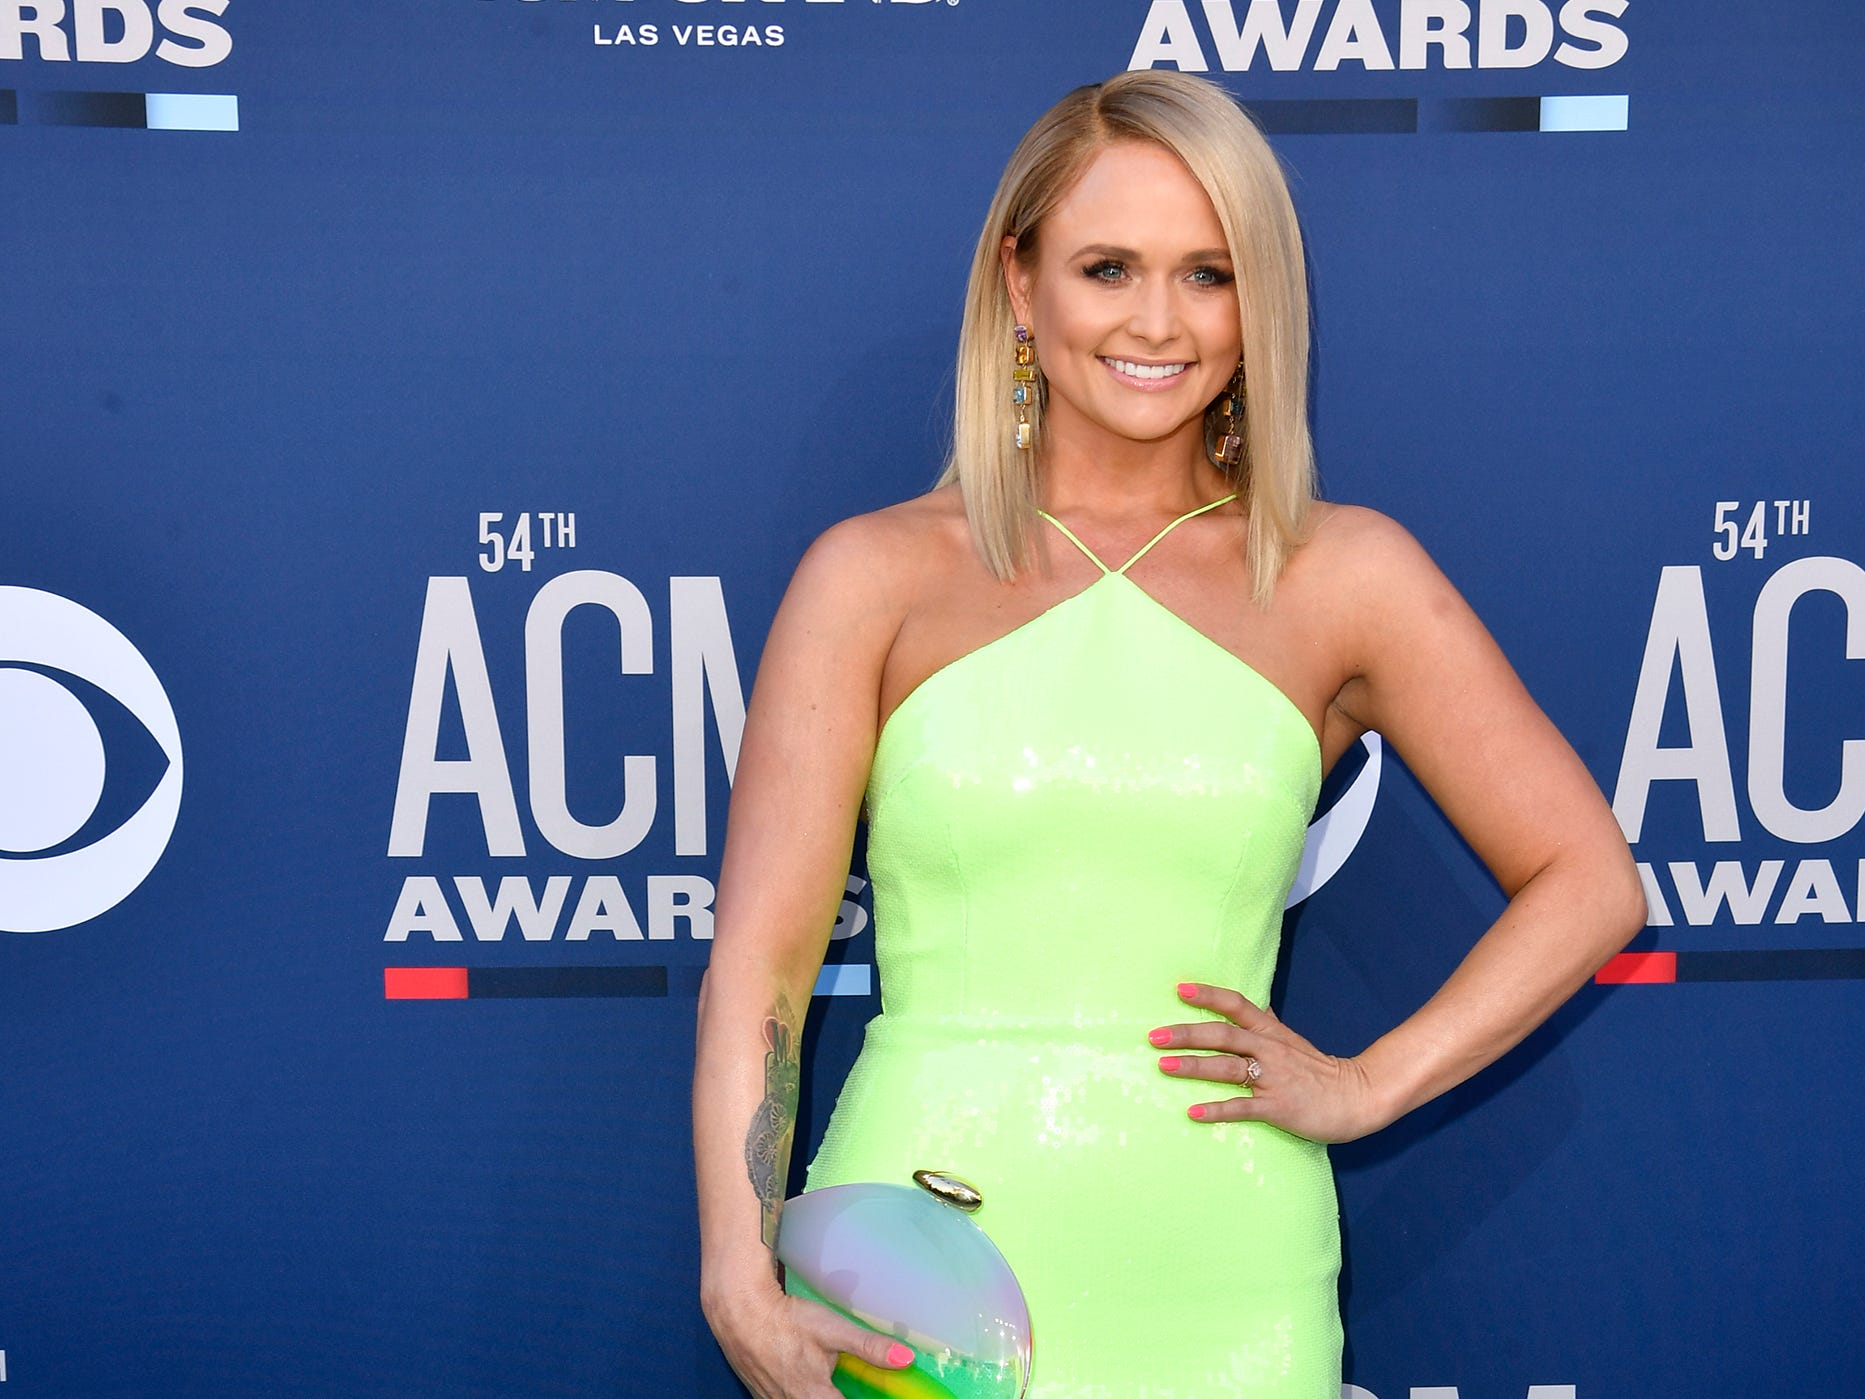 Miranda Lambert walks the red carpet at the 54TH Academy of Country Music Awards Sunday, April 7, 2019, in Las Vegas, Nev.